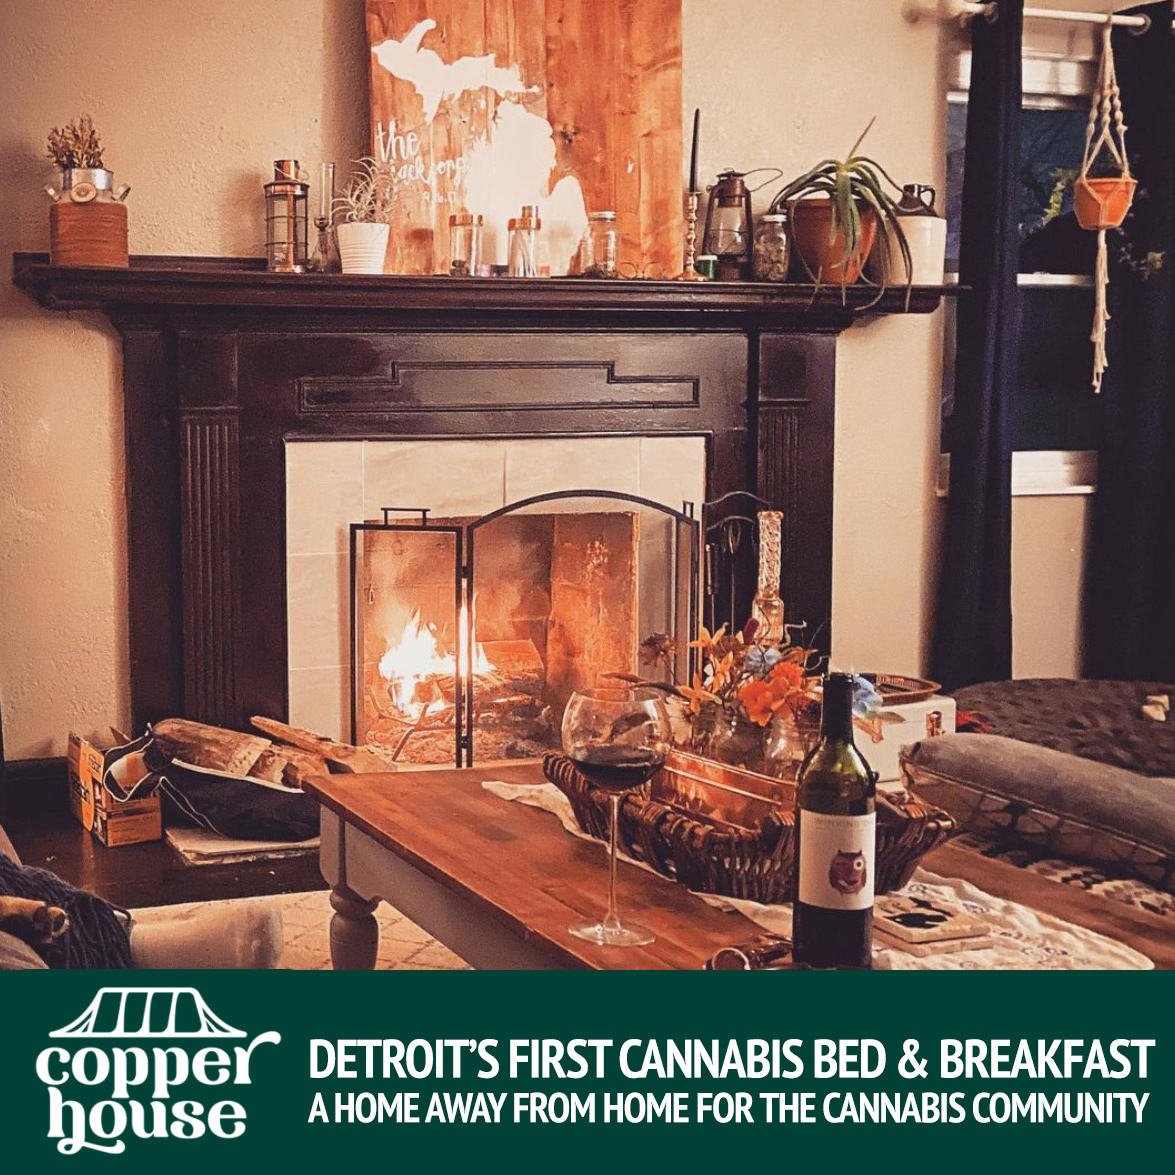 Copper House Bud & Breakfast Detroit